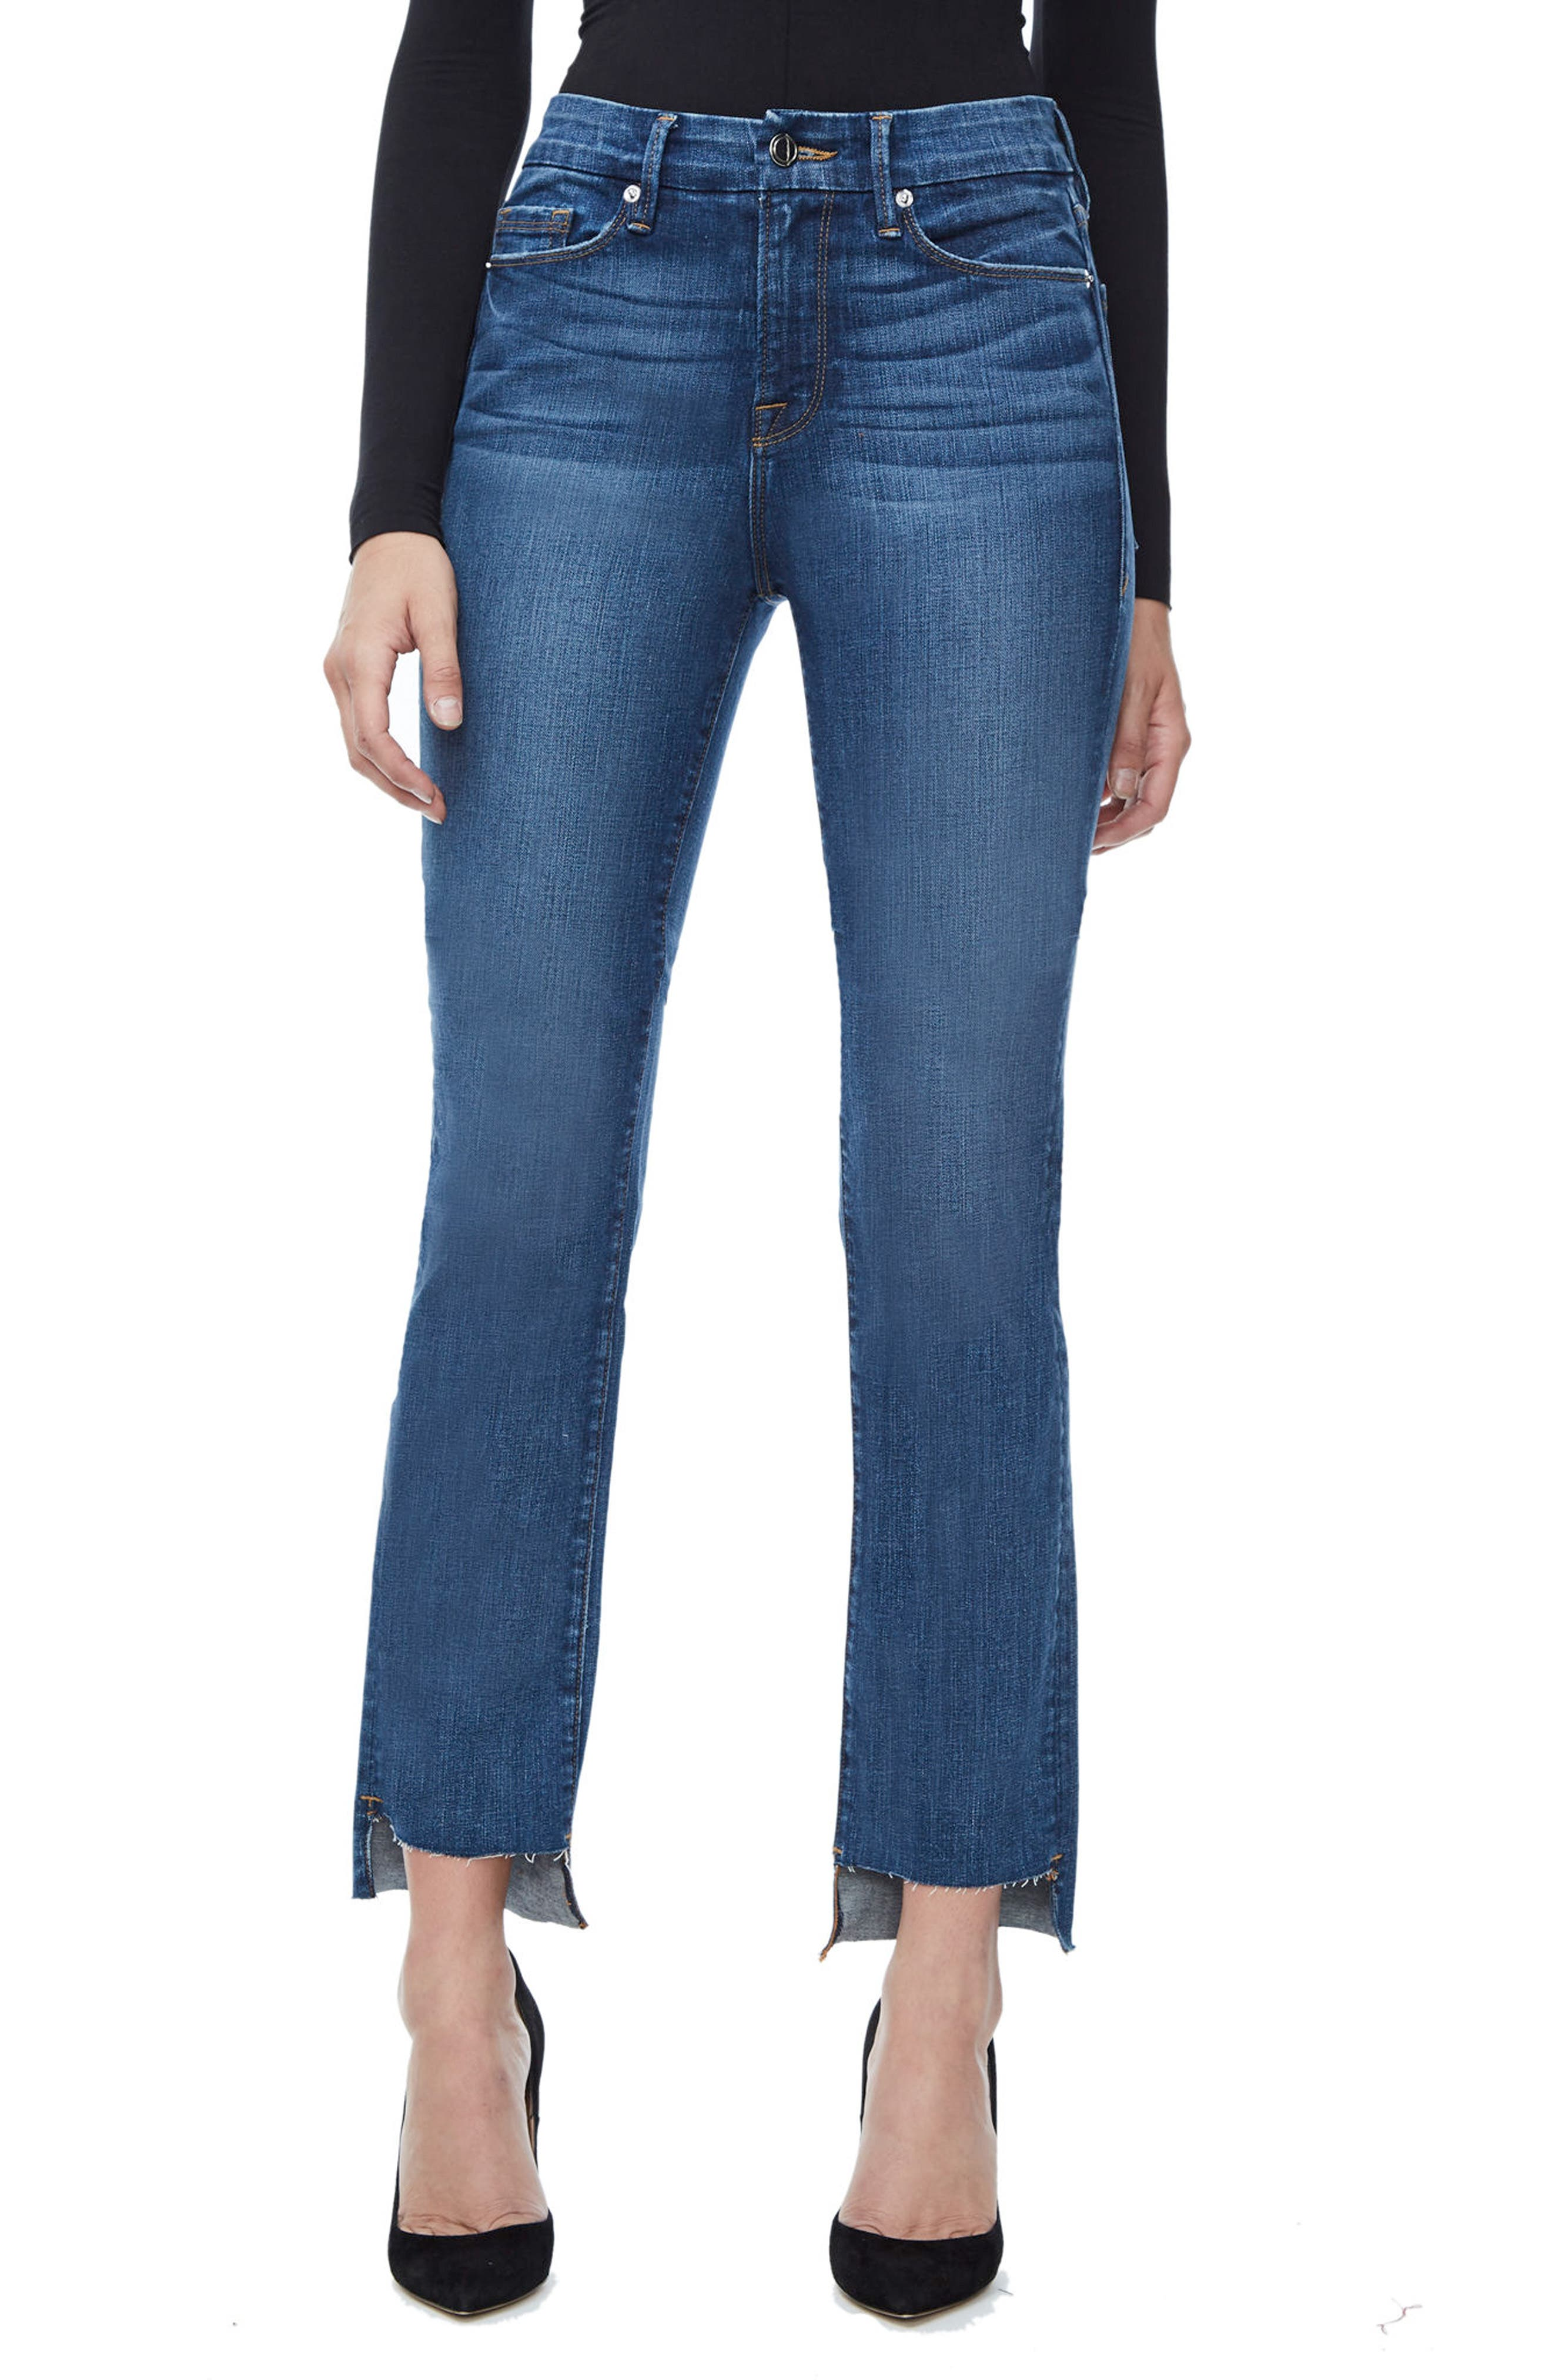 Alternate Image 1 Selected - Good American Good Straight Raw Hem High Waist Straight Leg Jeans (Blue 086) (Extended Sizes)